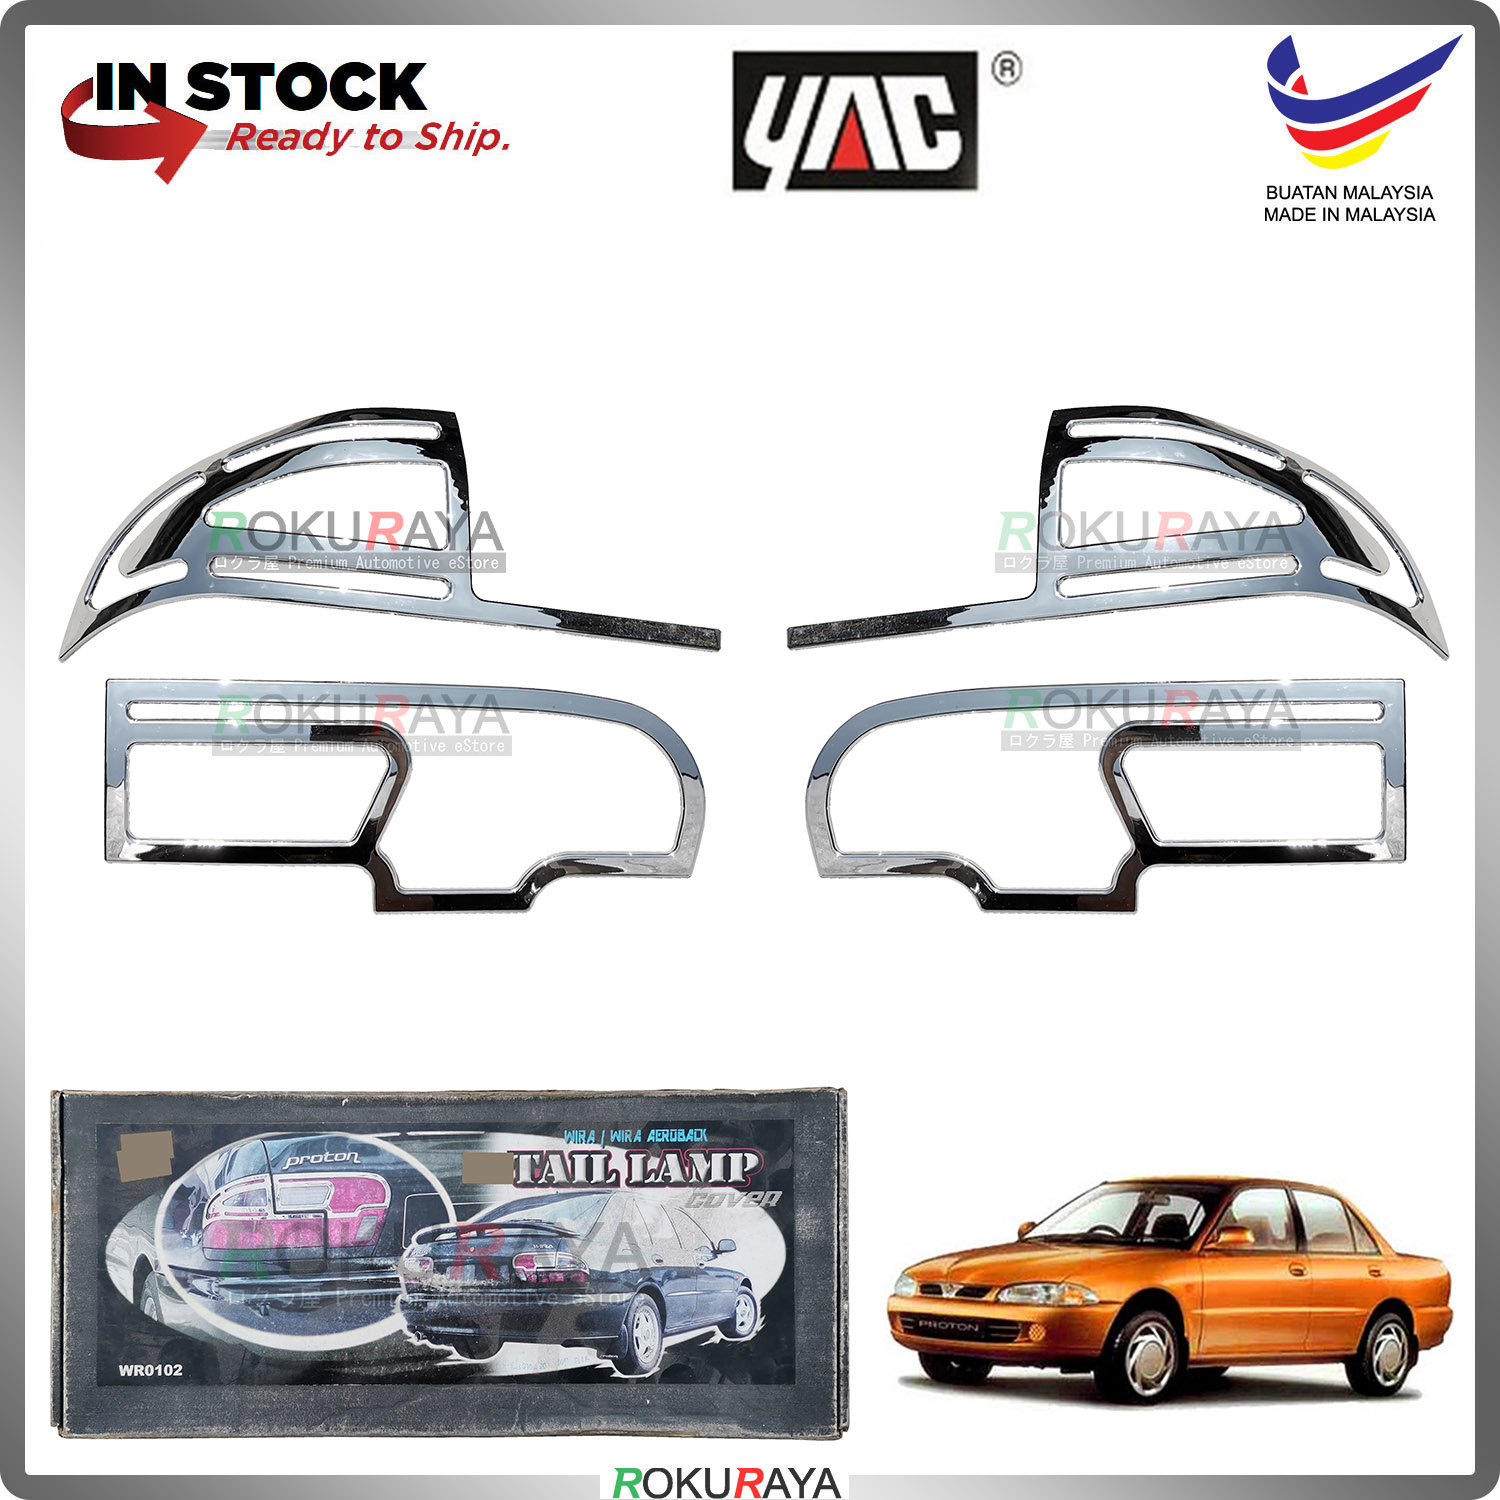 [CHROME] Proton Wira Custom Fit ABS Plastic Rear Tail Lamp Garnish Moulding Cover